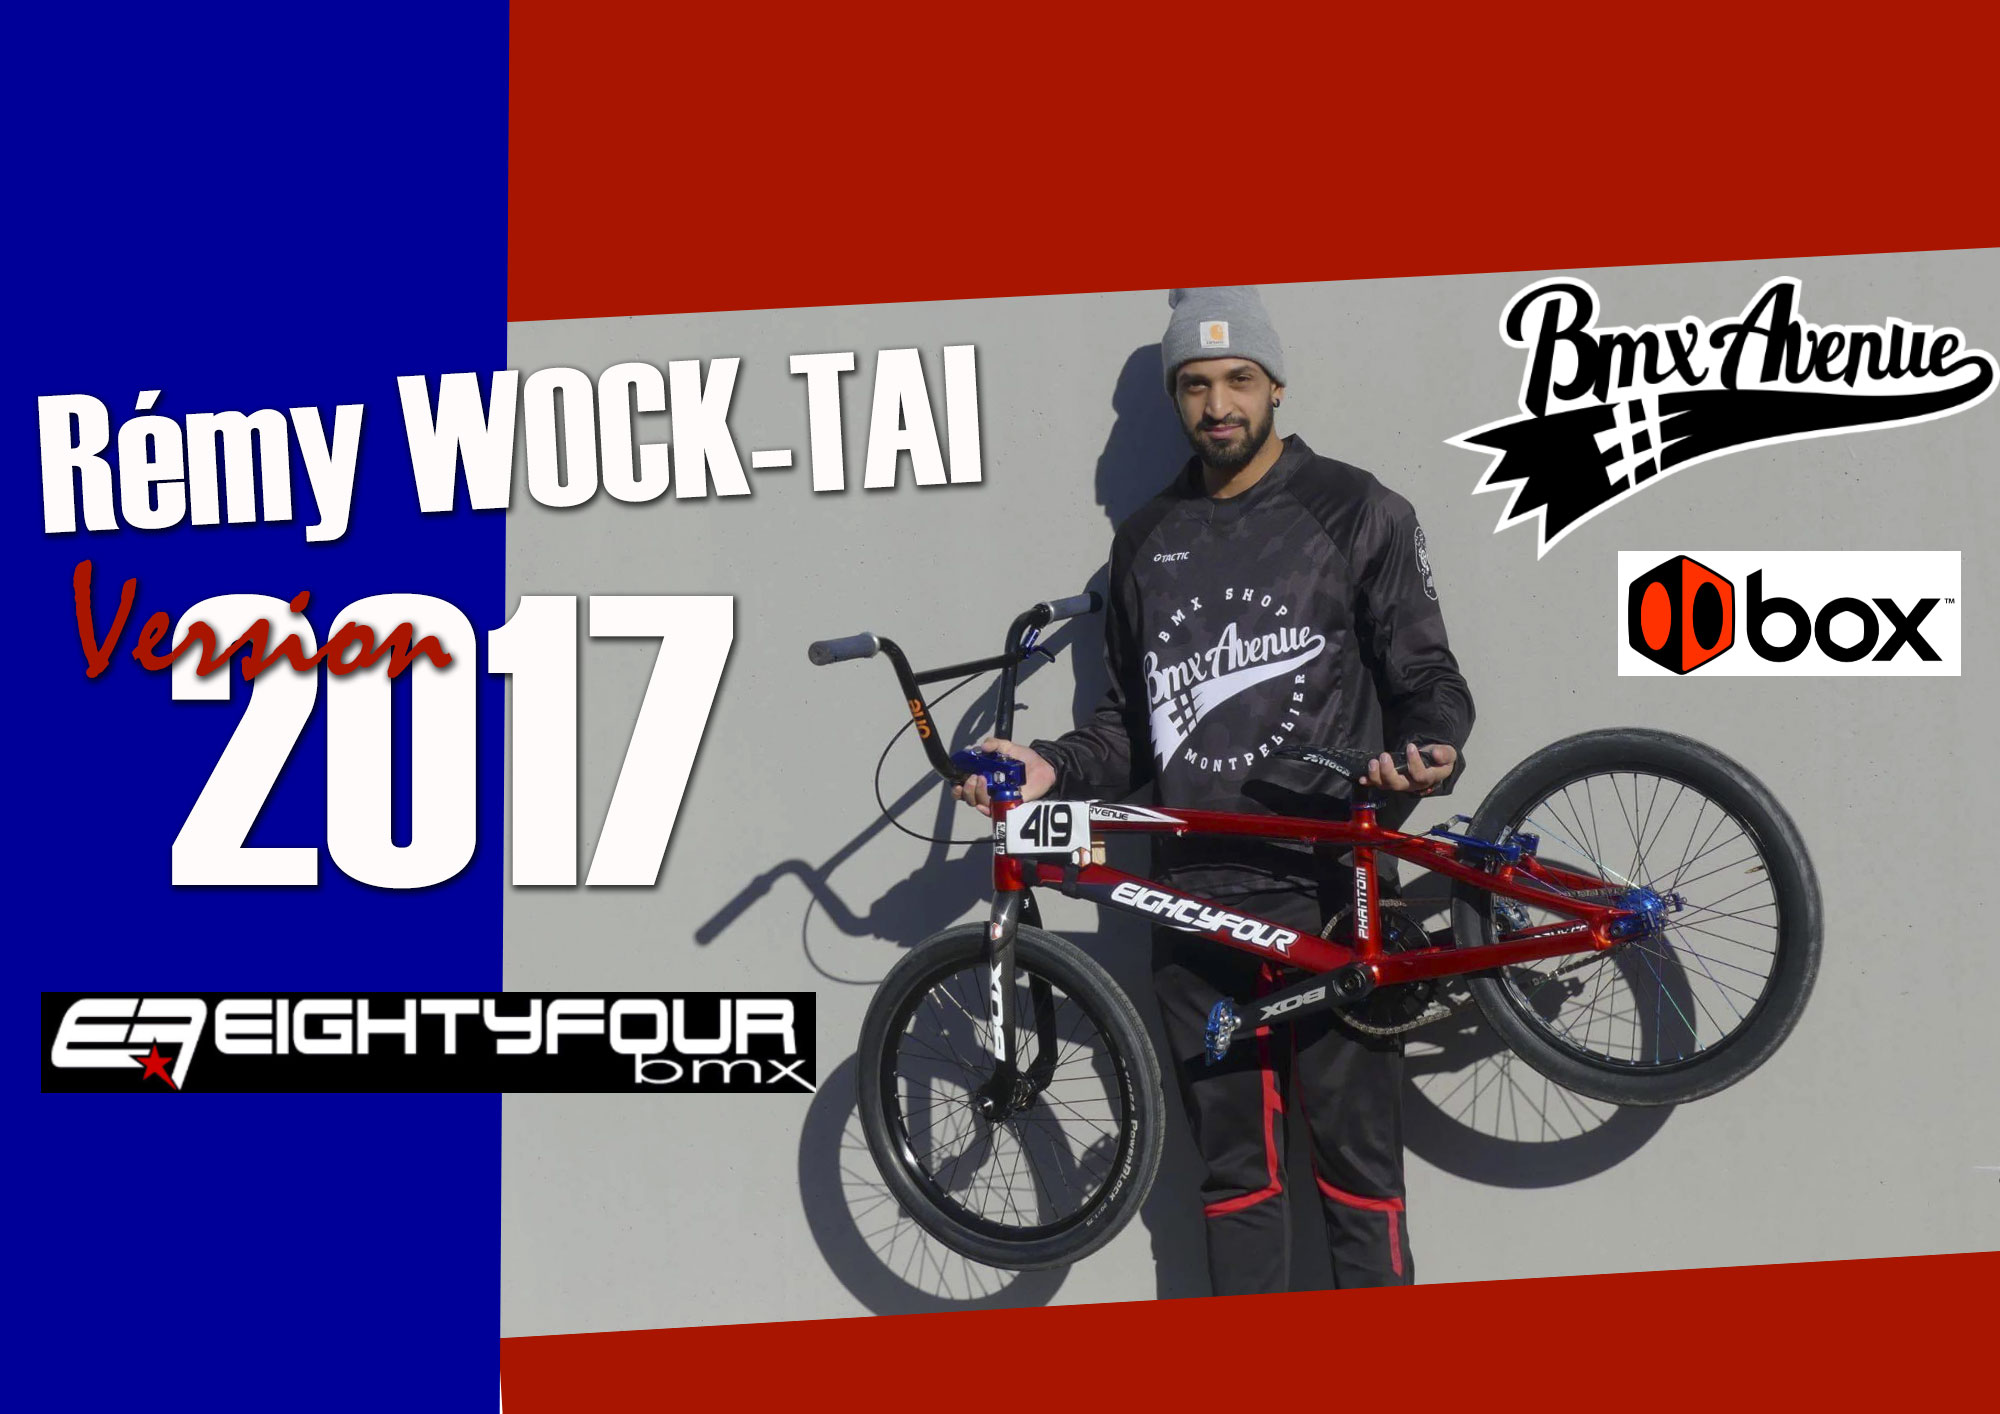 Rémy WOCK-TAI version 2017 !